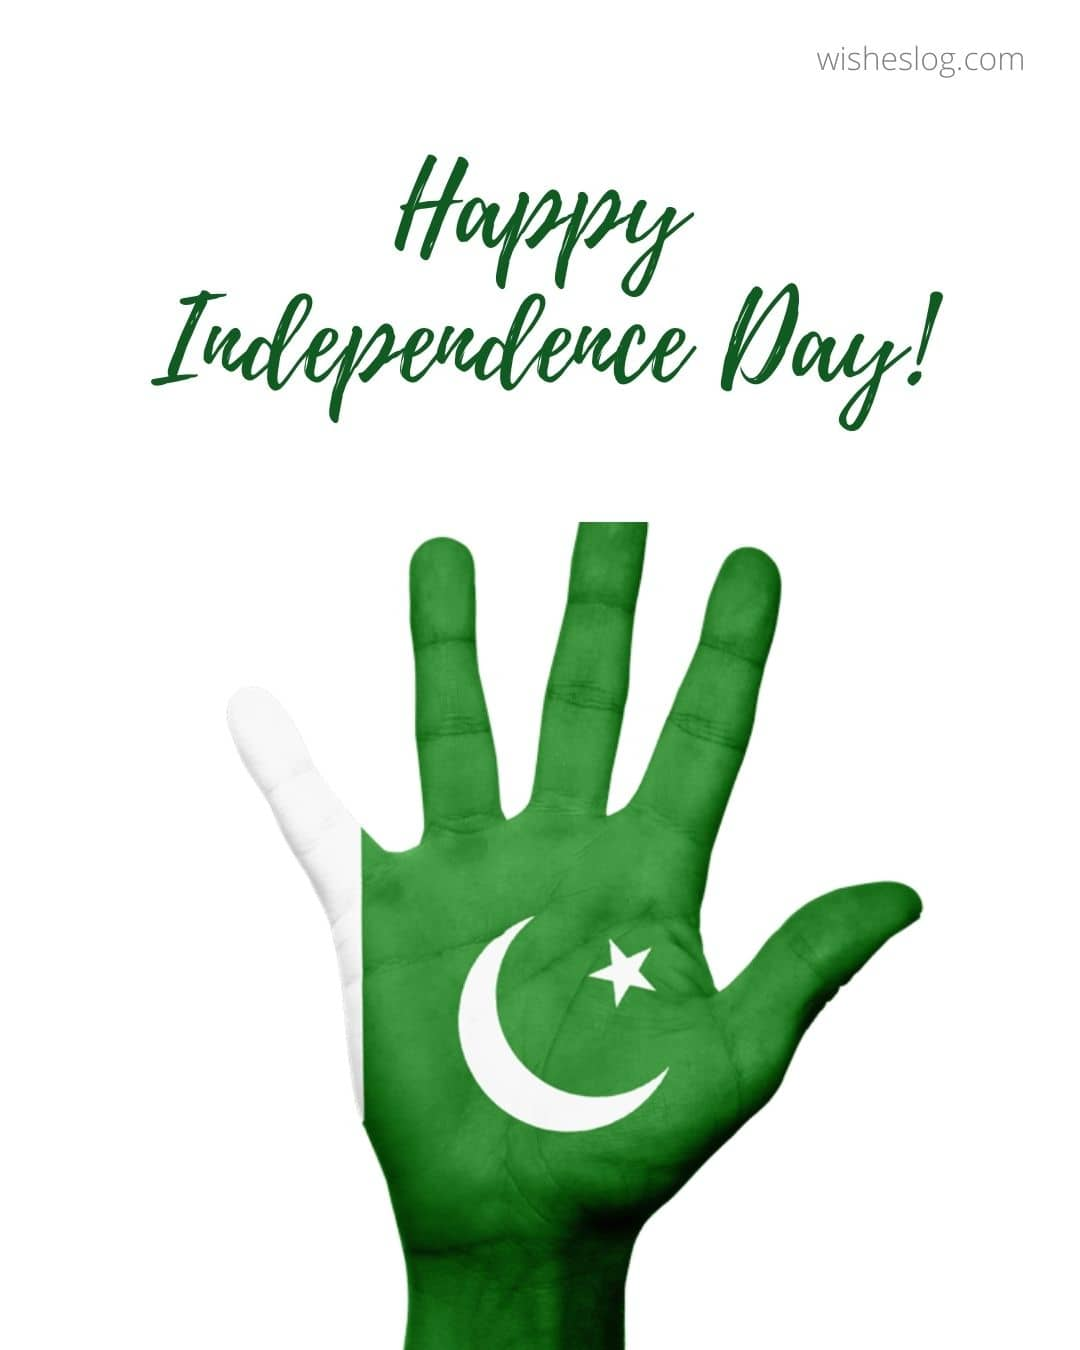 pakistan-independence-day-9